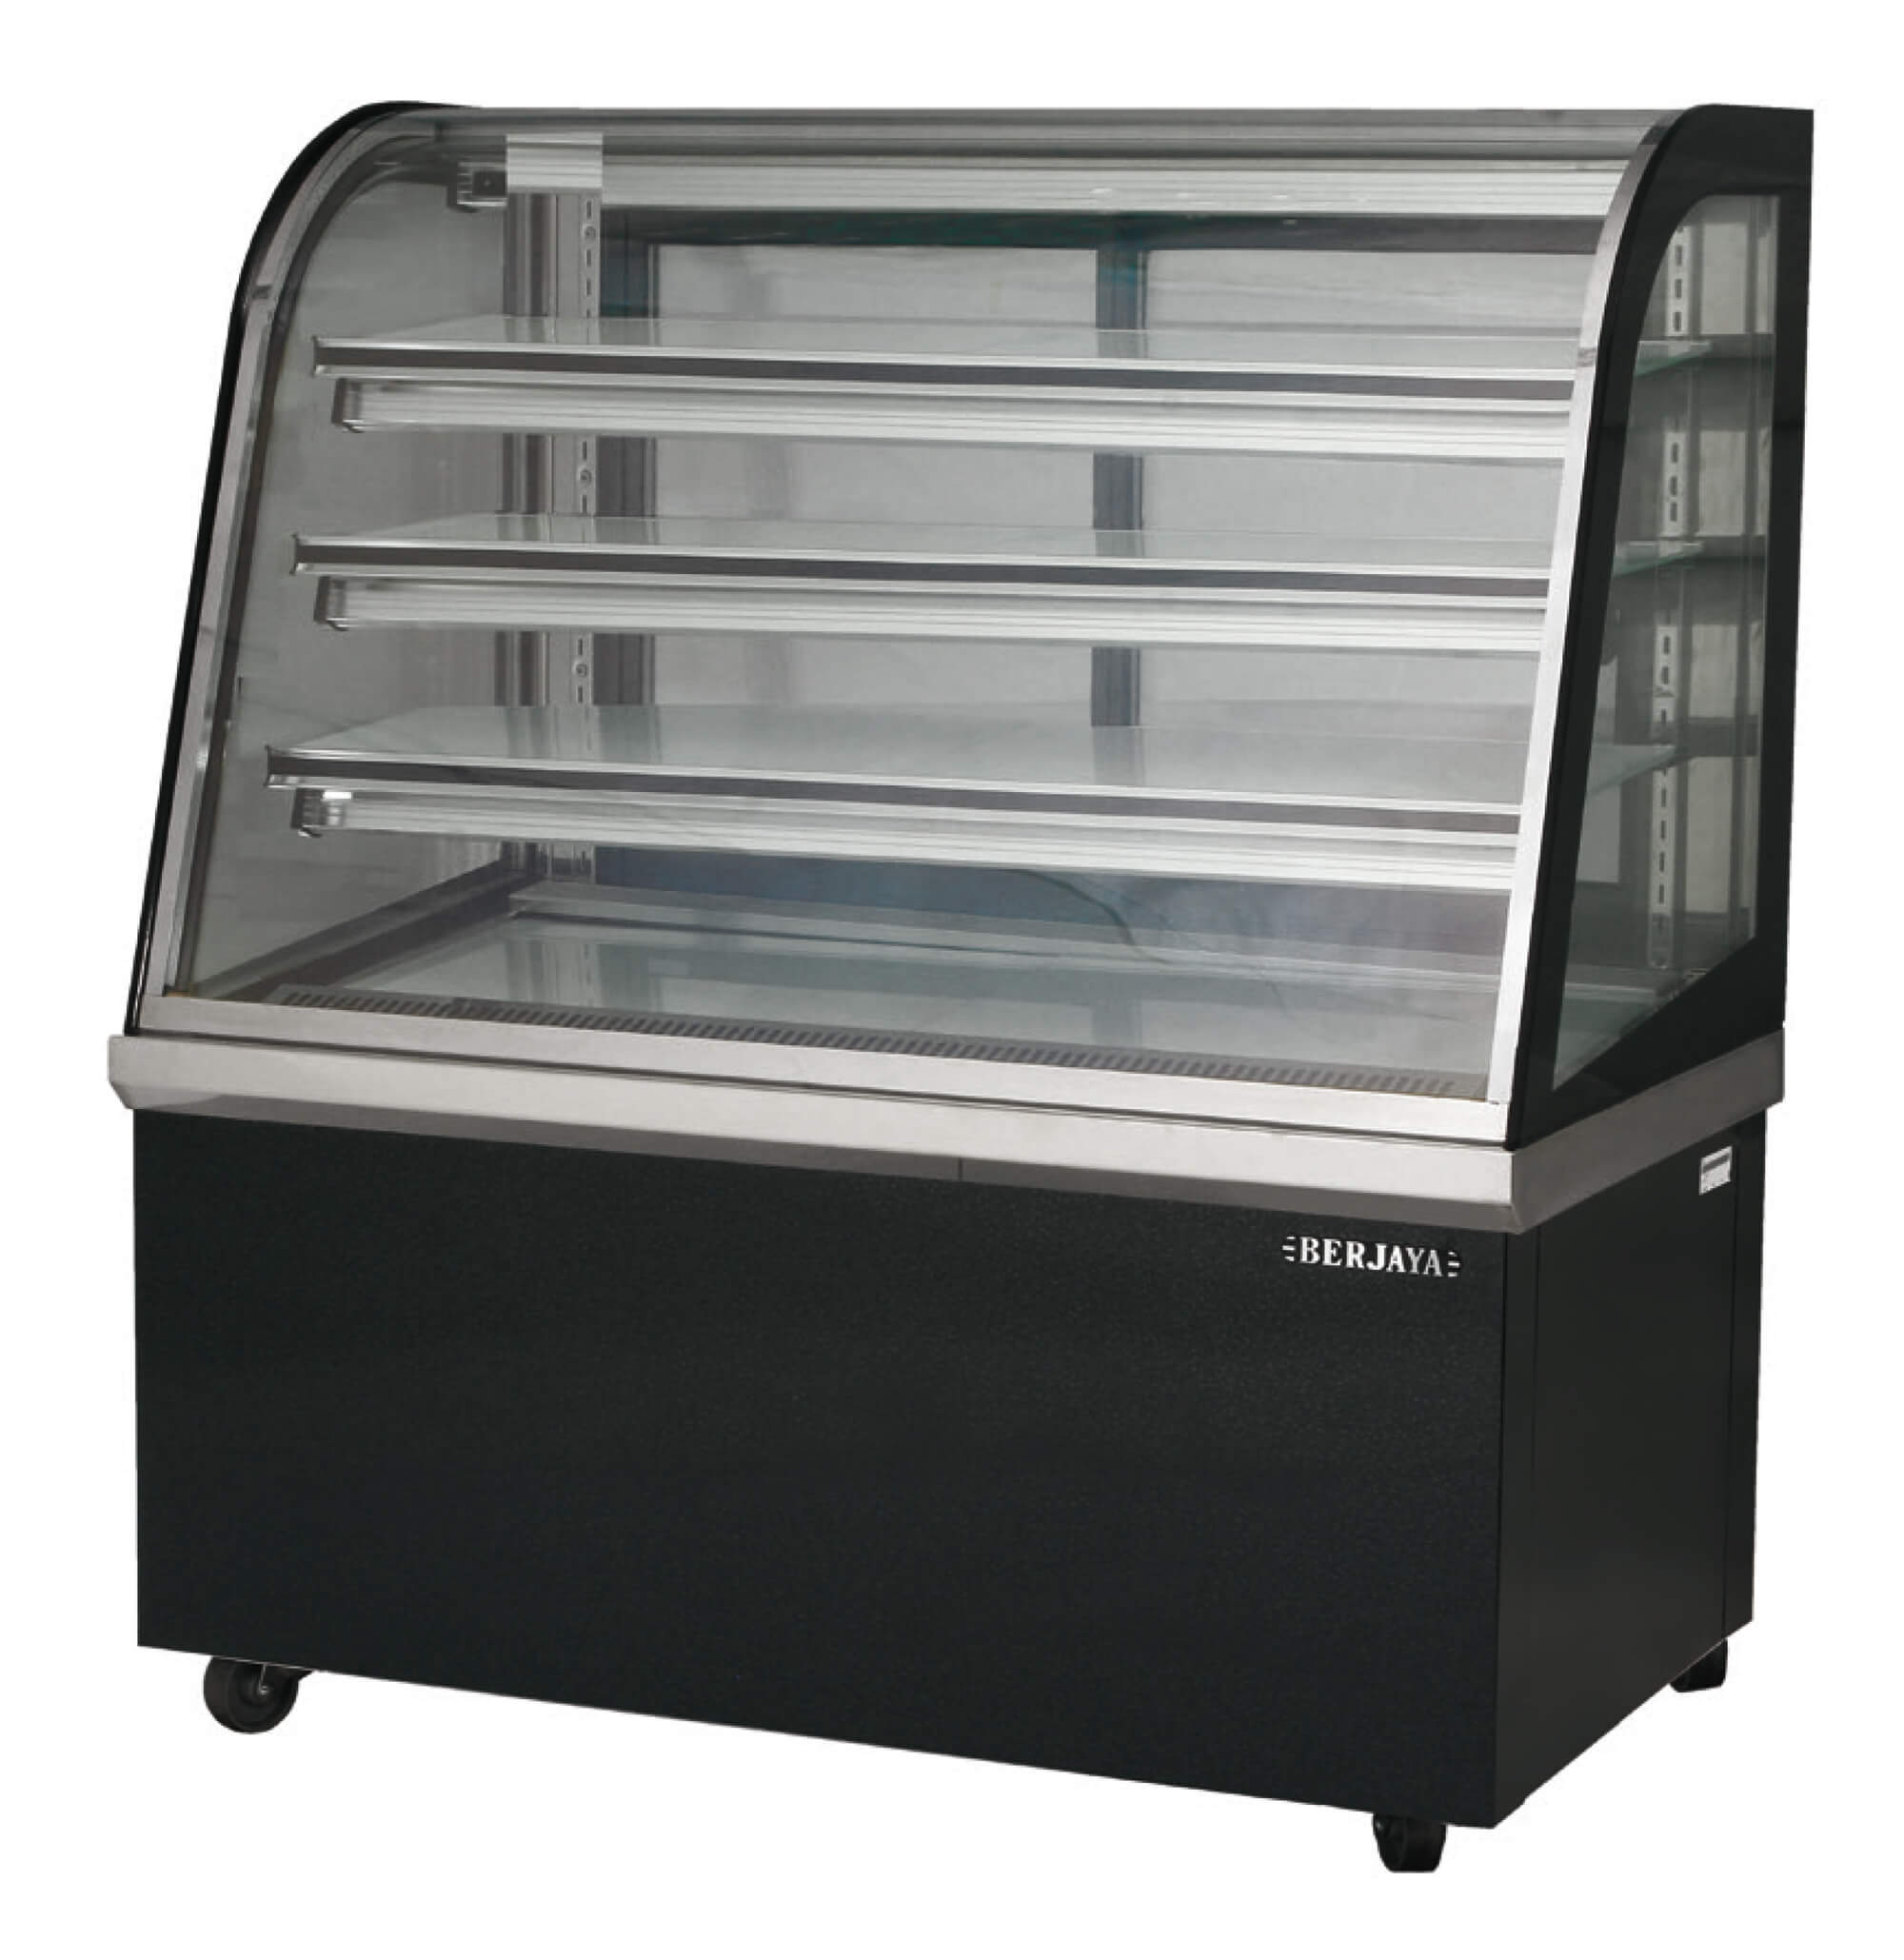 and under countertop bar back product coolers category refrigeration display retailer toronto freezer counter products refrigerators hussmann refrigerator true freezers of new